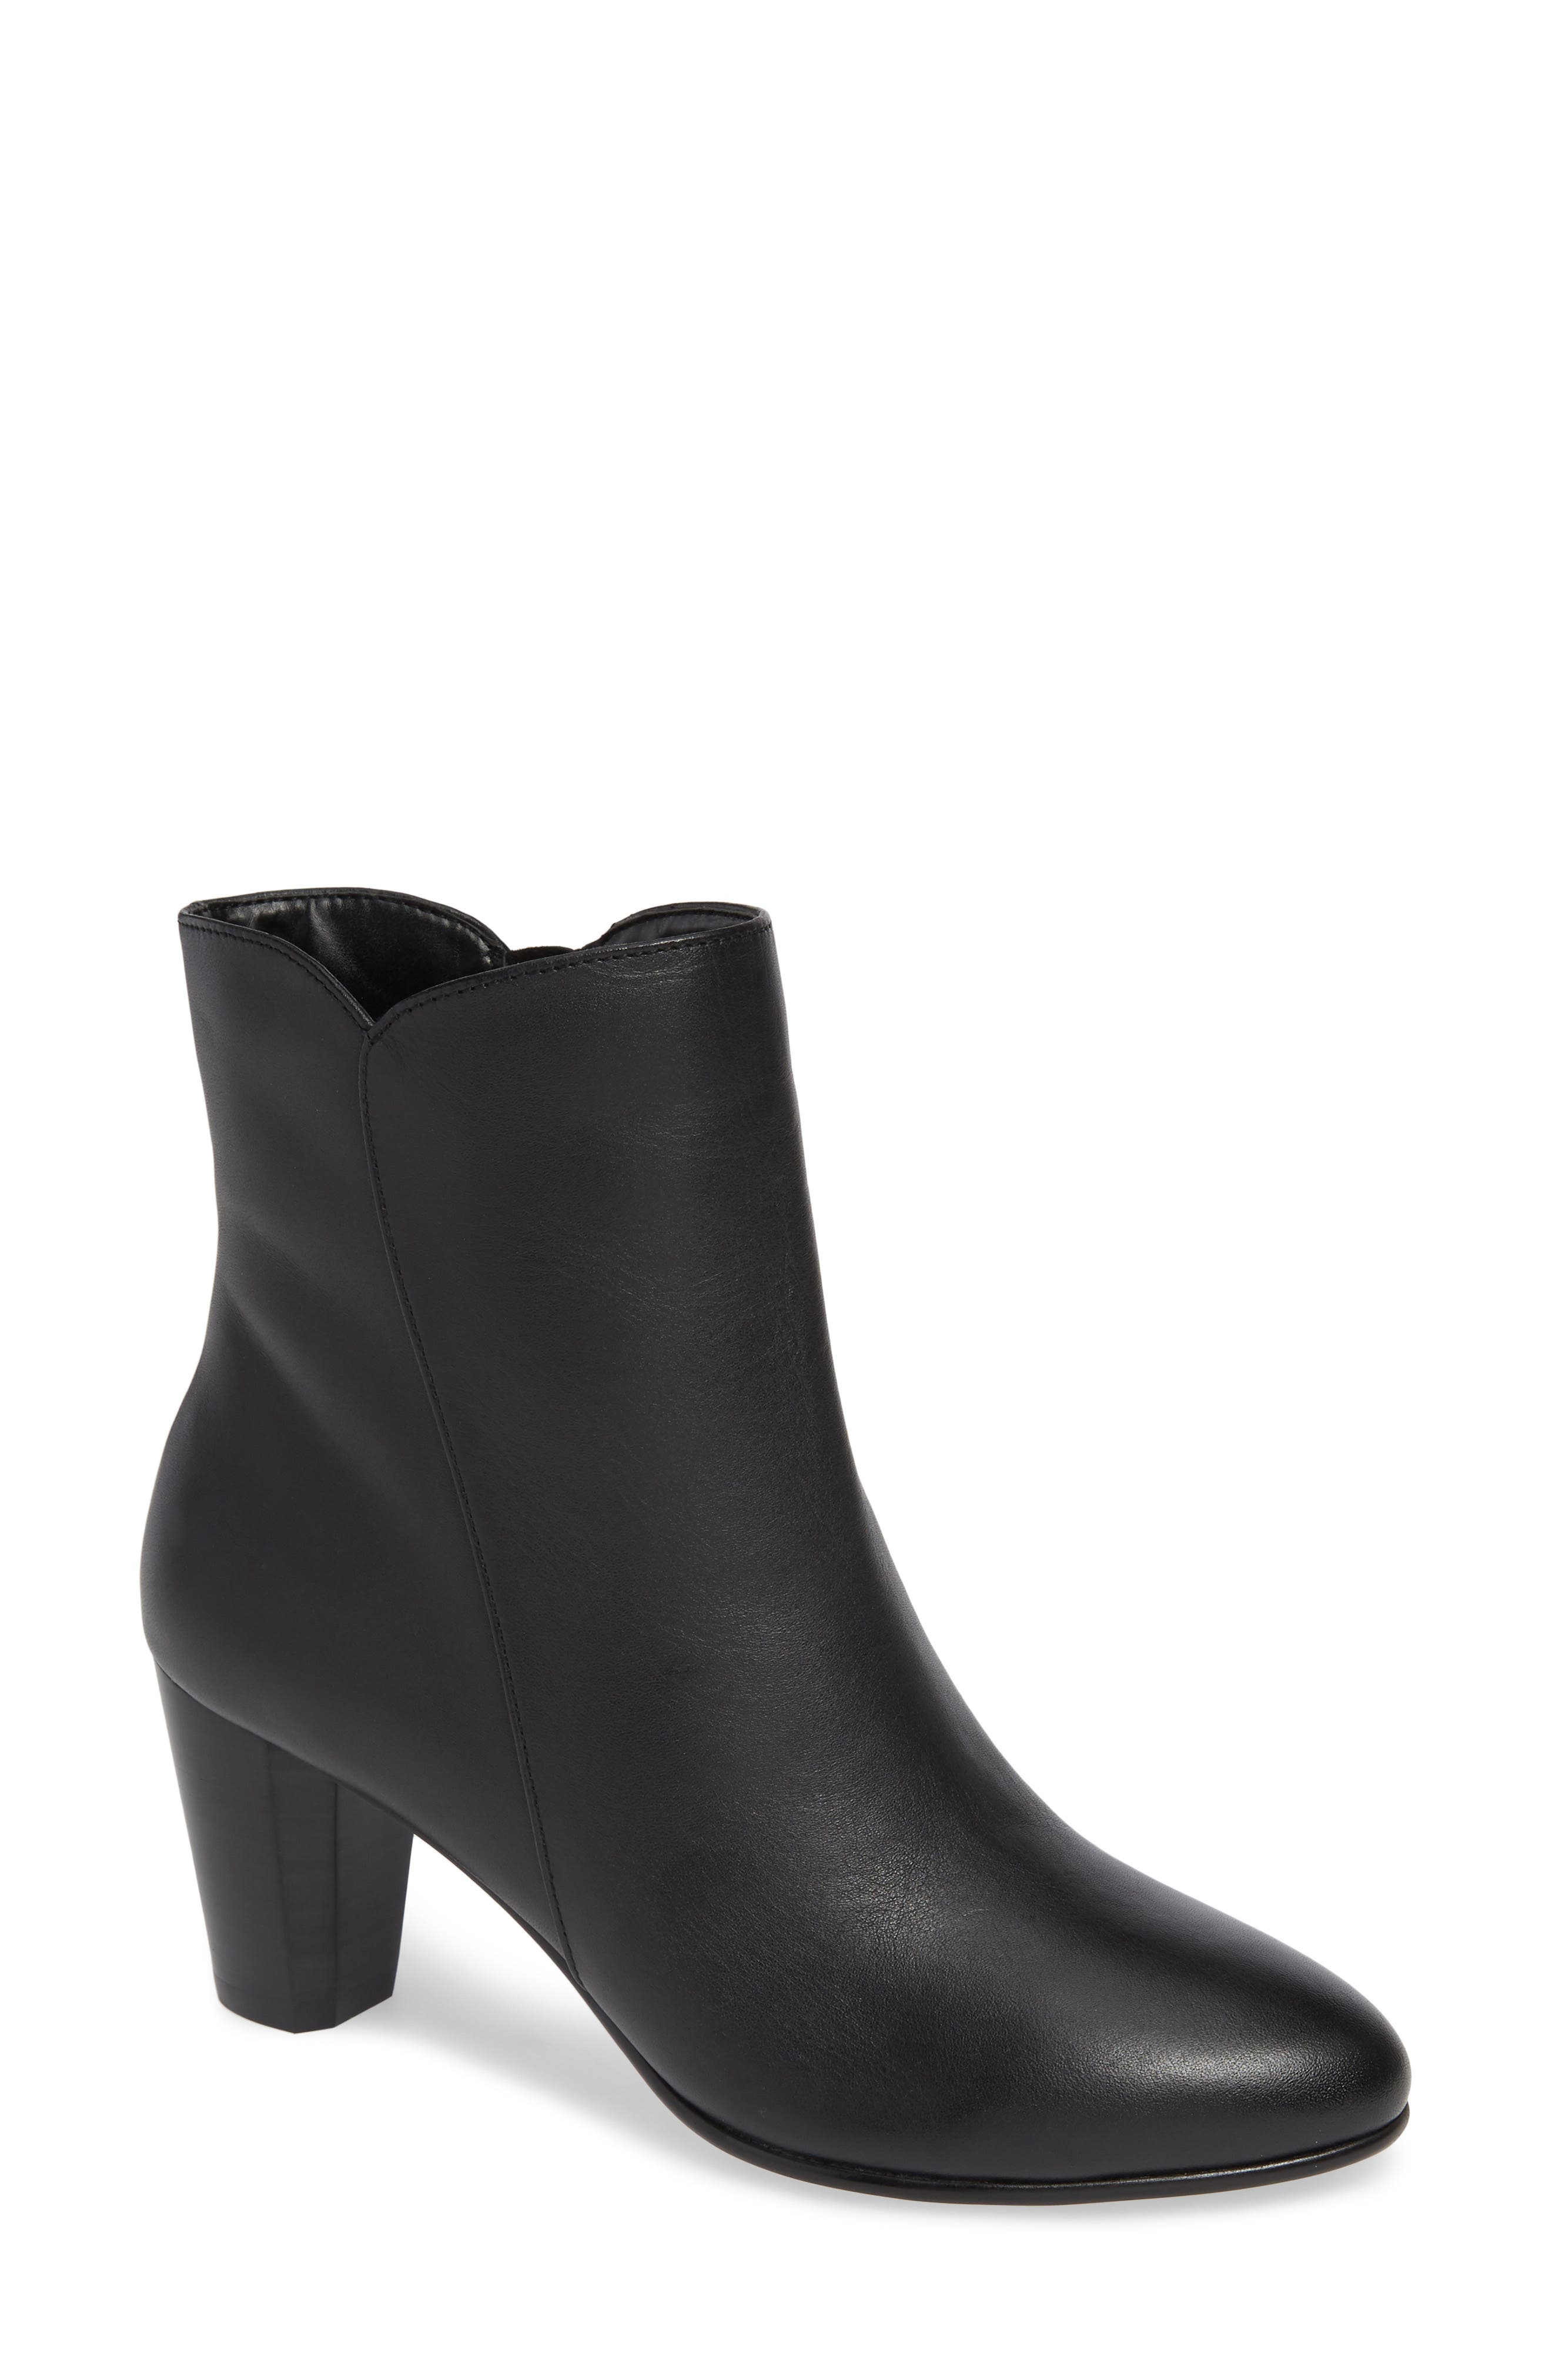 David Tate Alexa Bootie, WW - Black